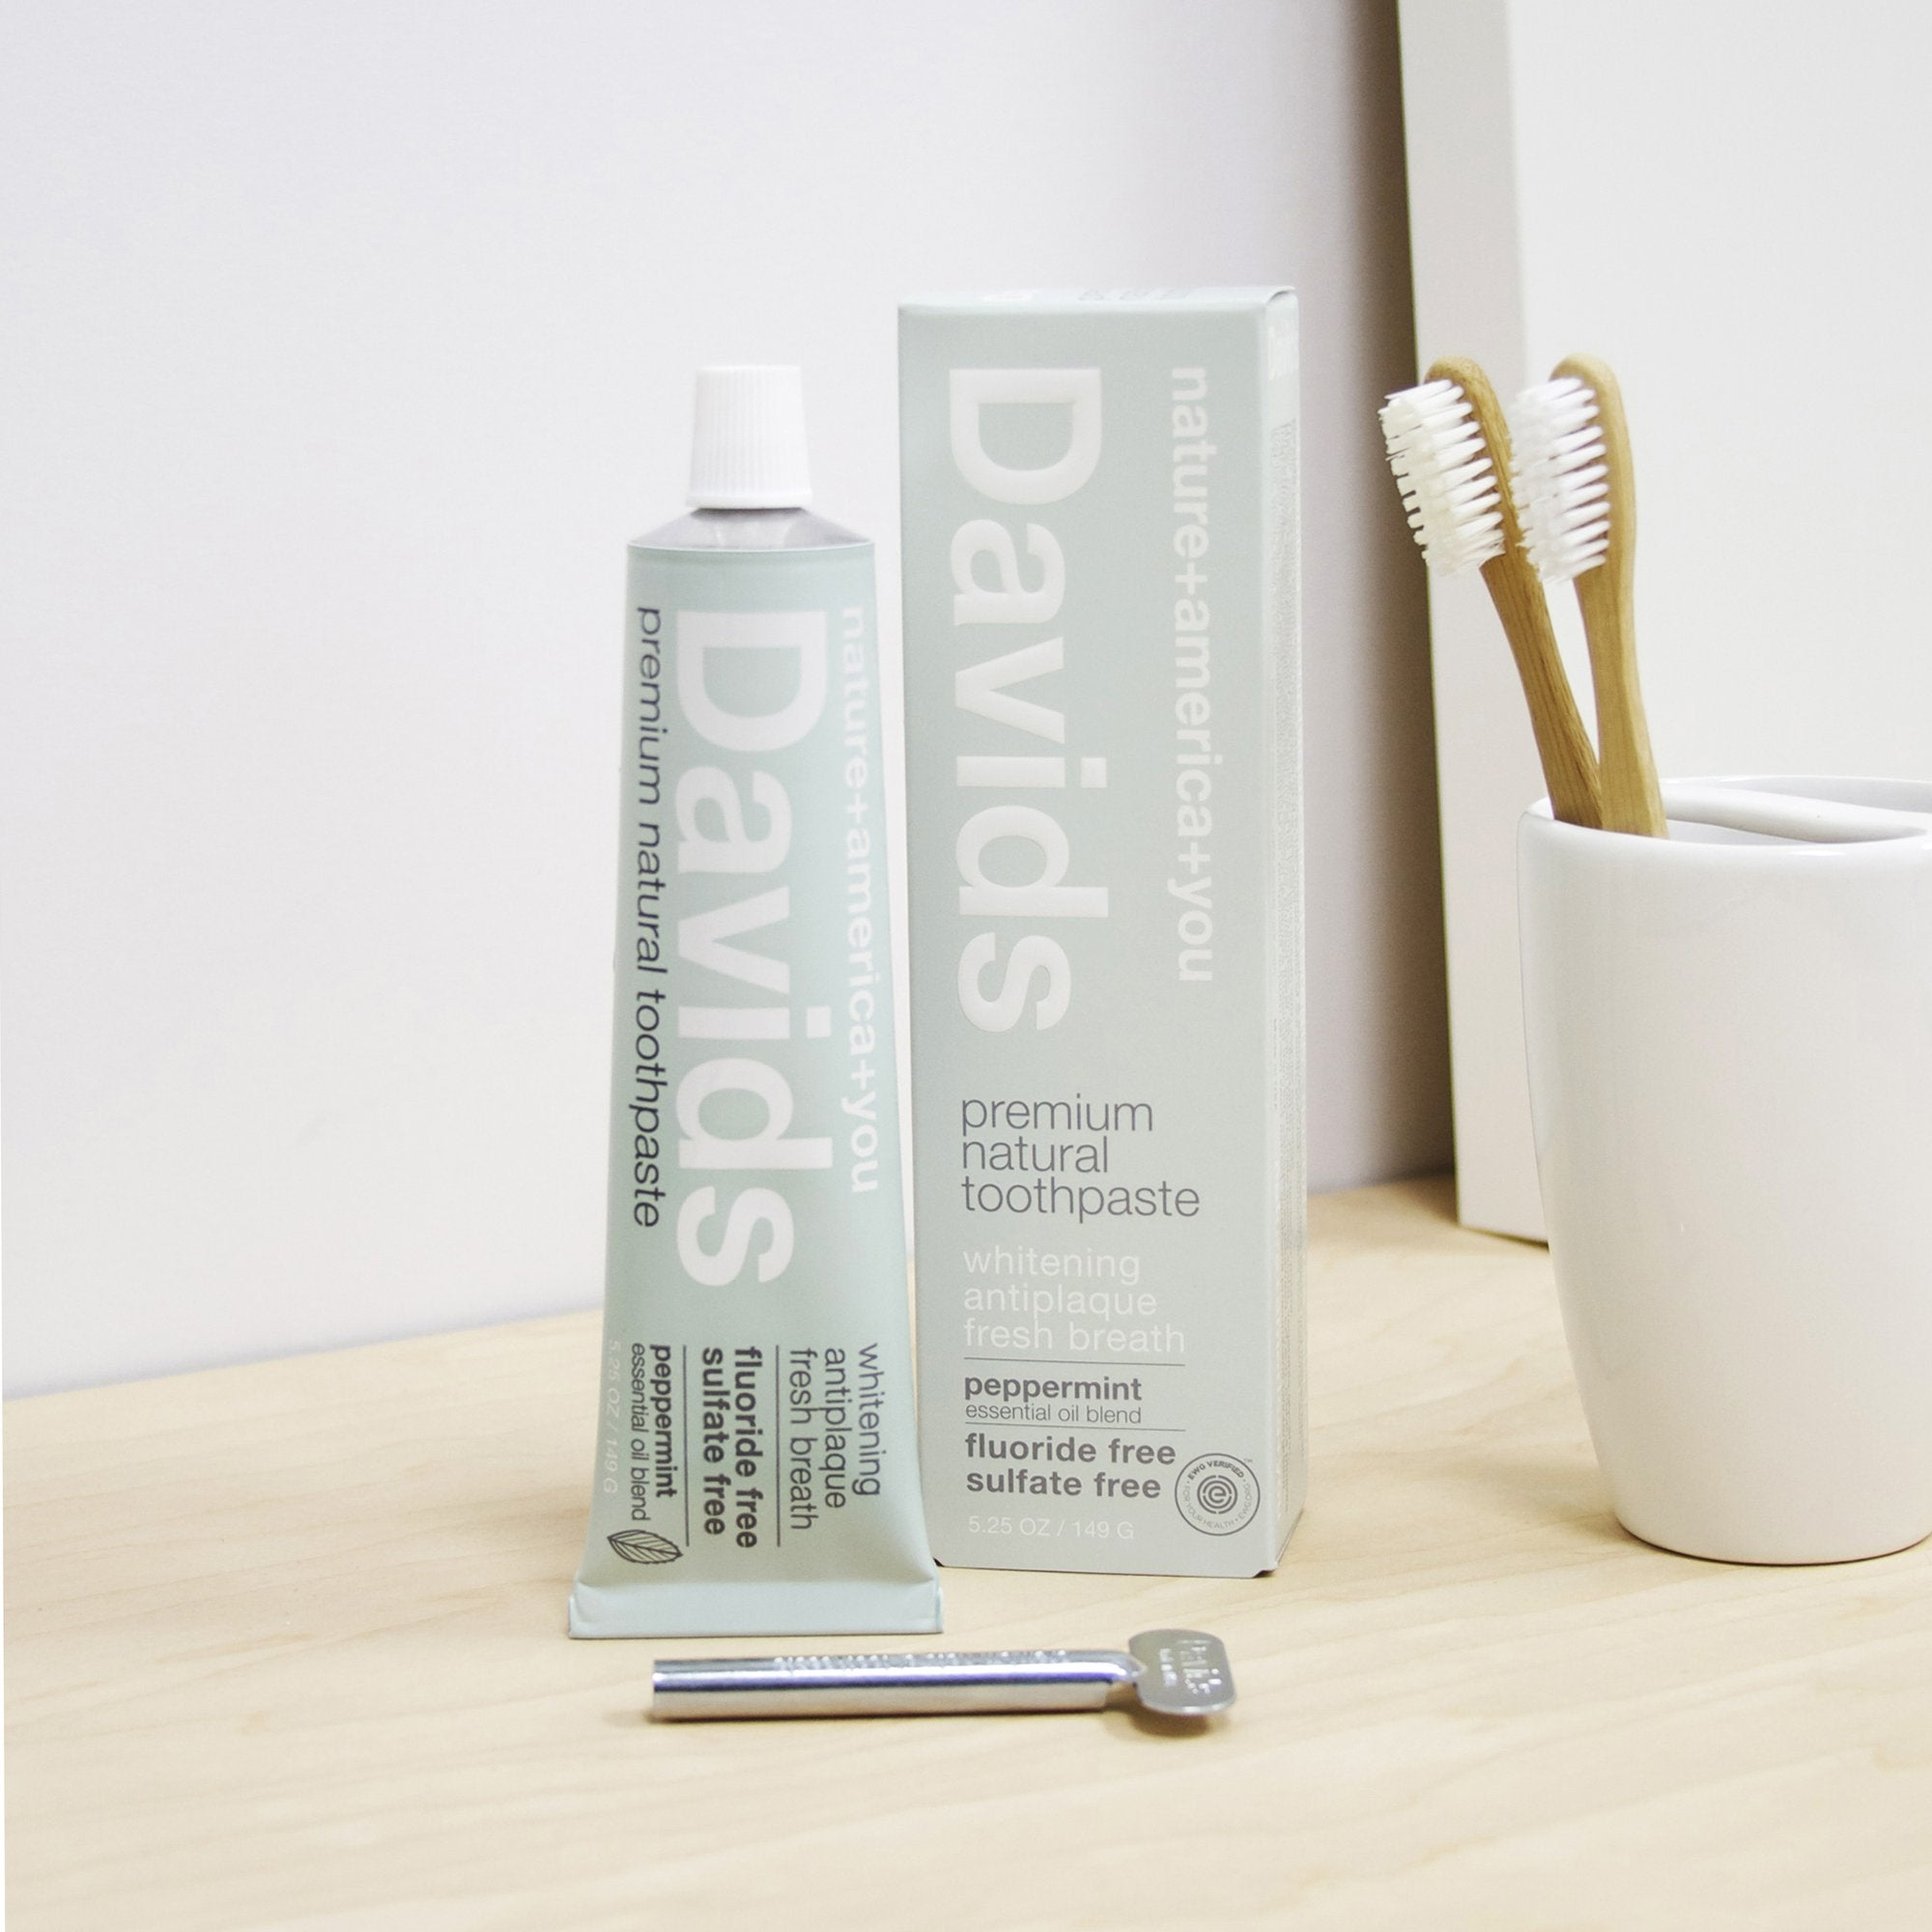 davids toothpaste